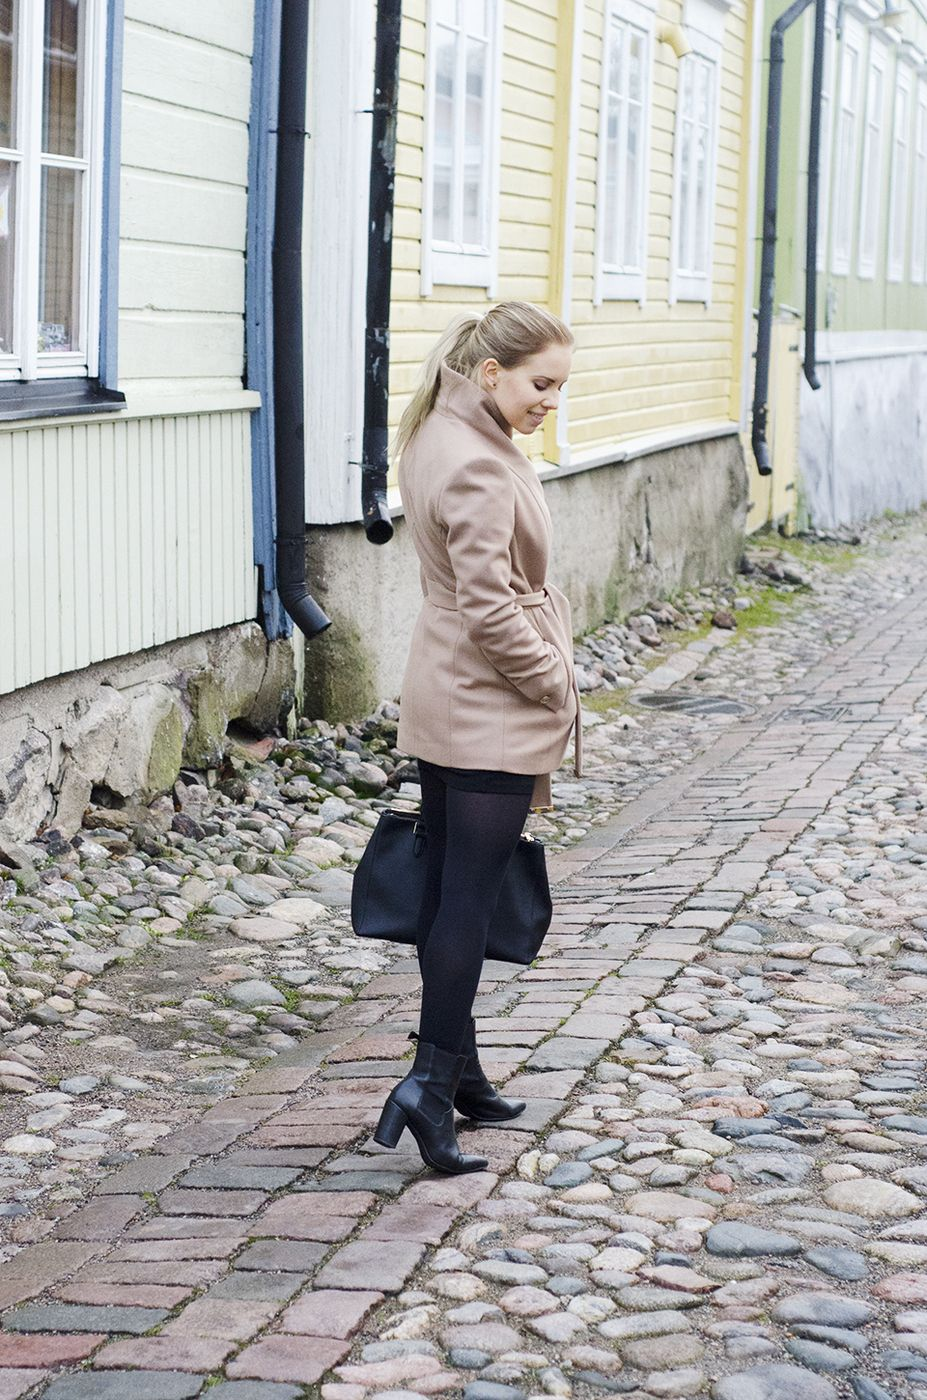 found a perfect wool coat from ted baker ♥ #lovedahelsinki #tedbaker #ootd #outfit #style #FW